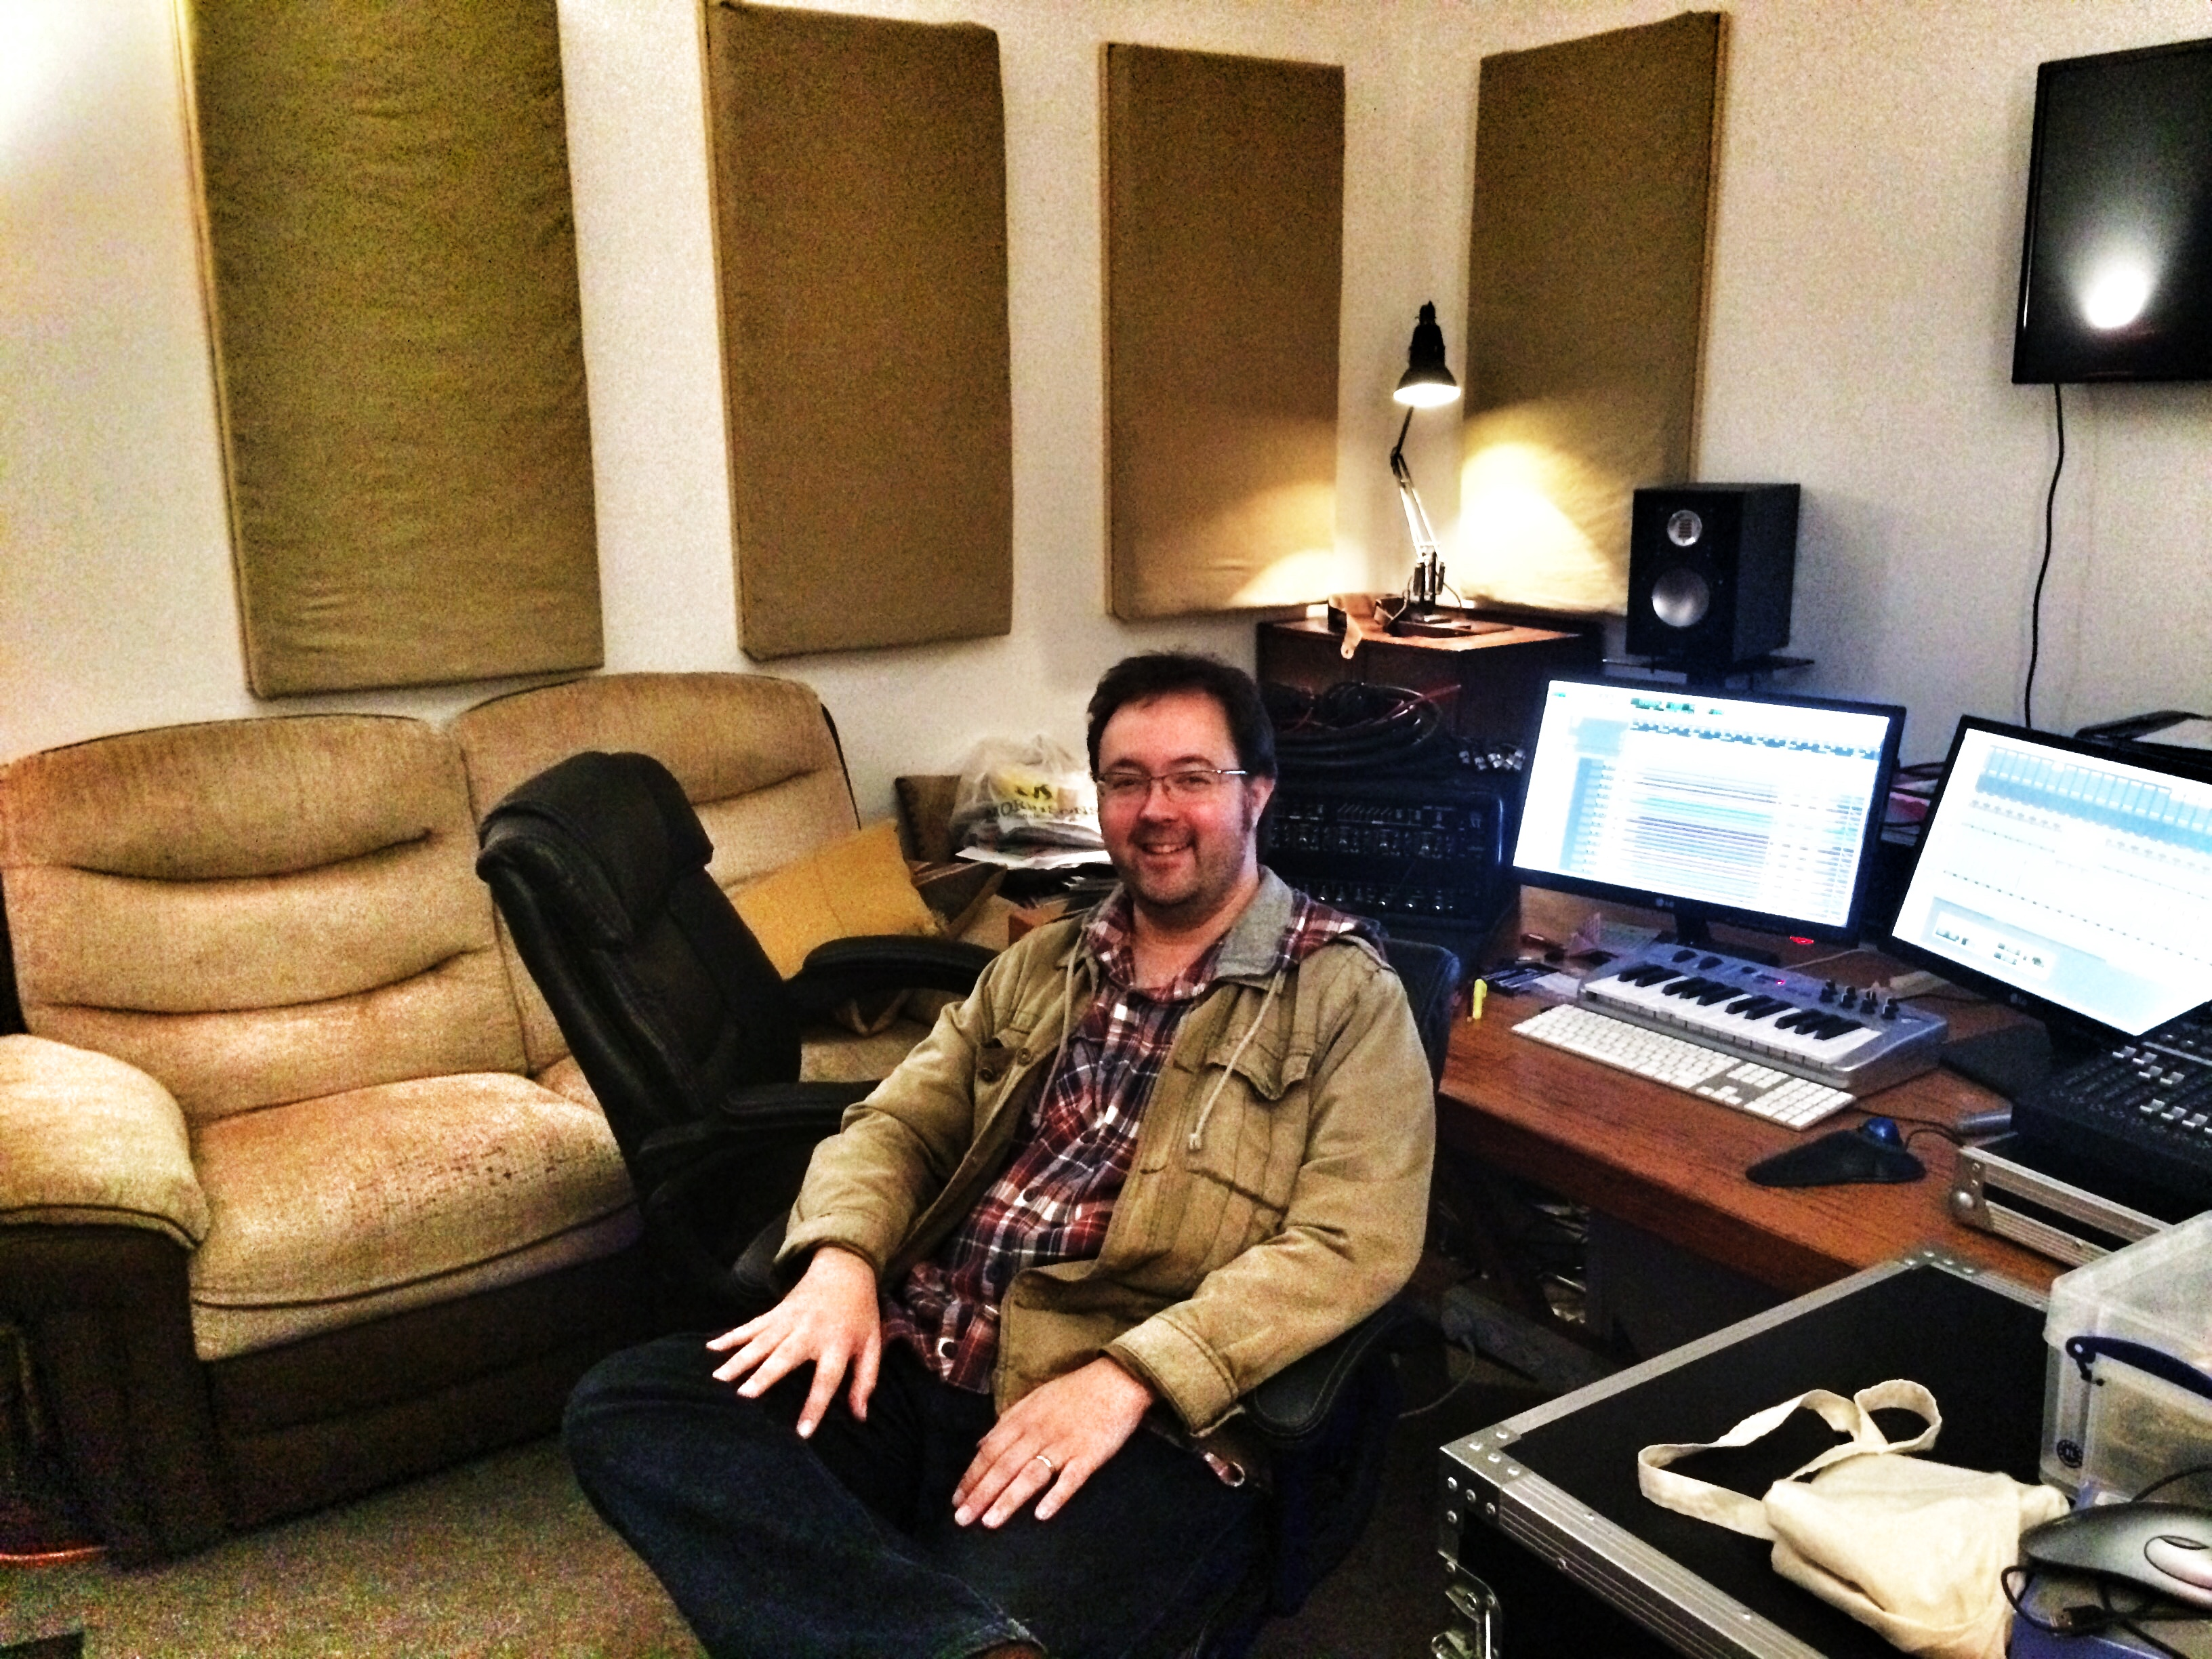 Niall Acott at NJA Audio Productions